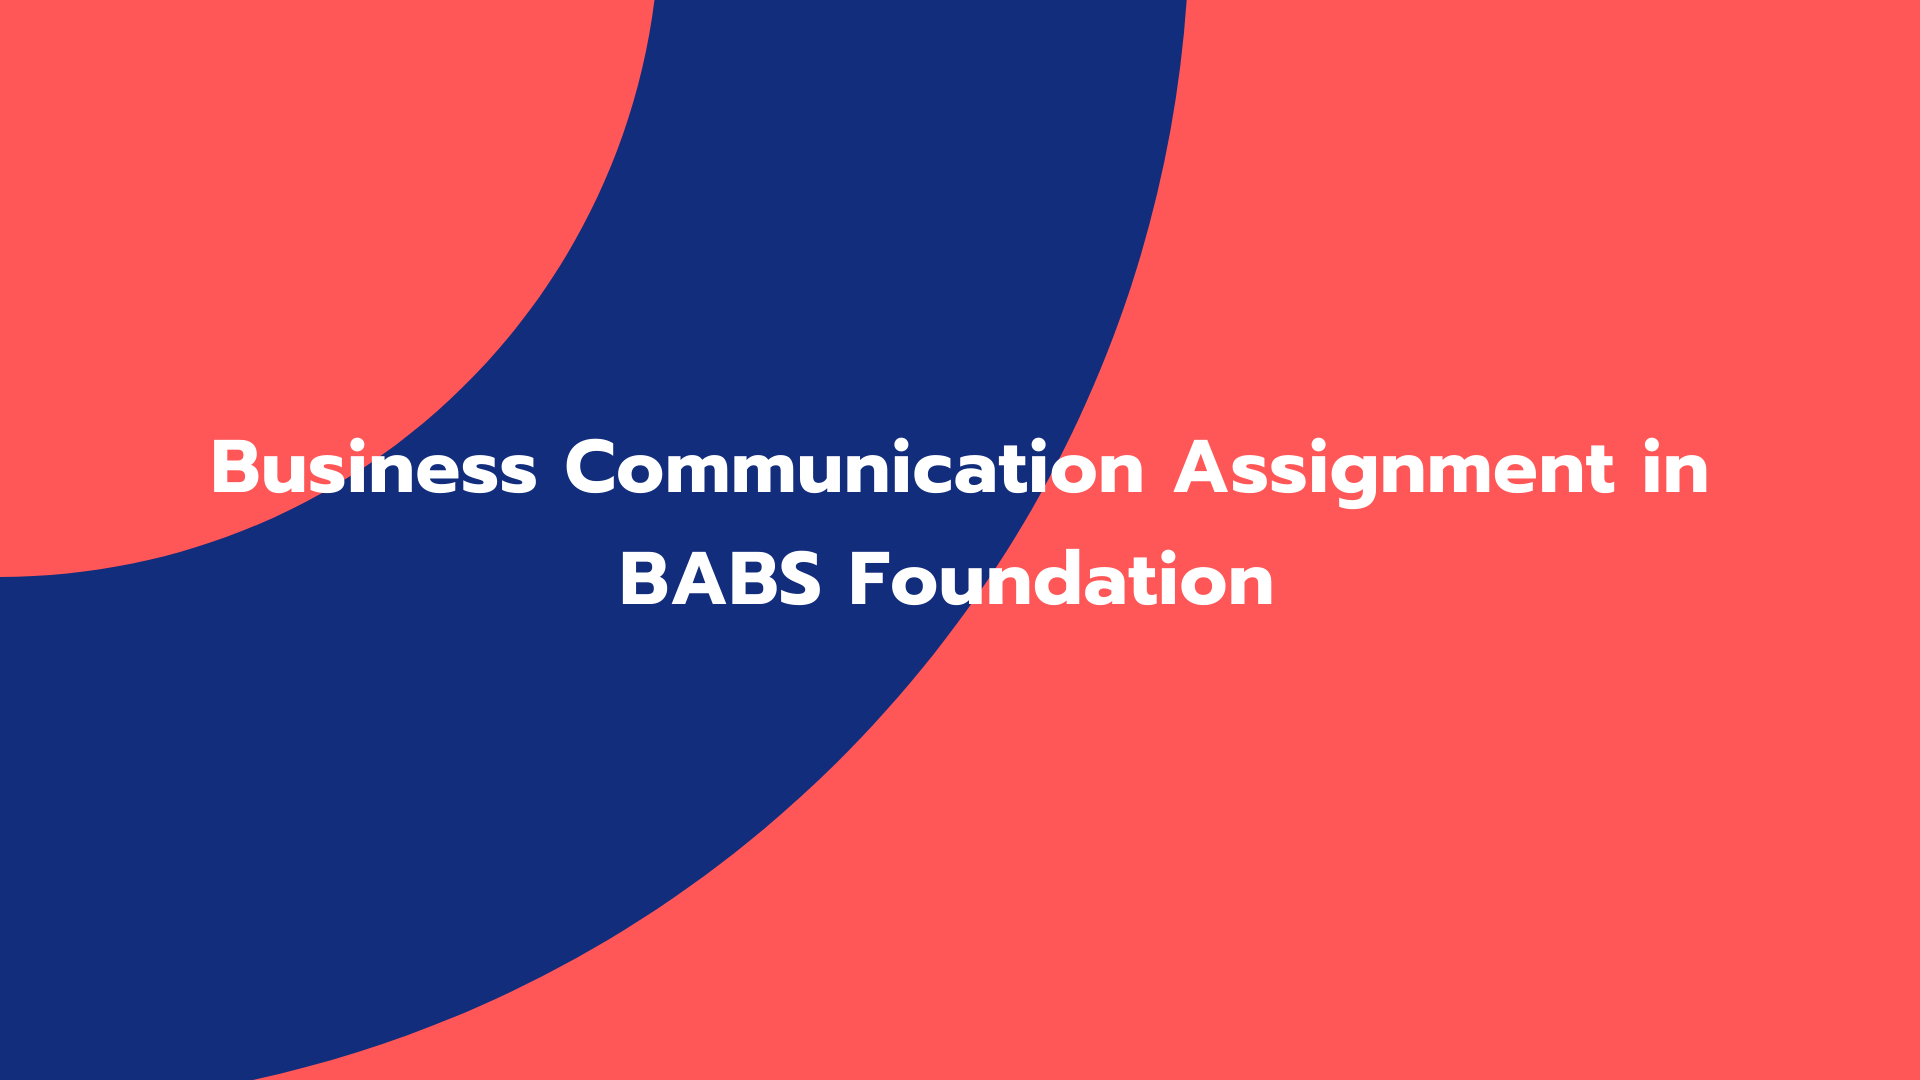 Business Communication Assignment in BABS Foundation